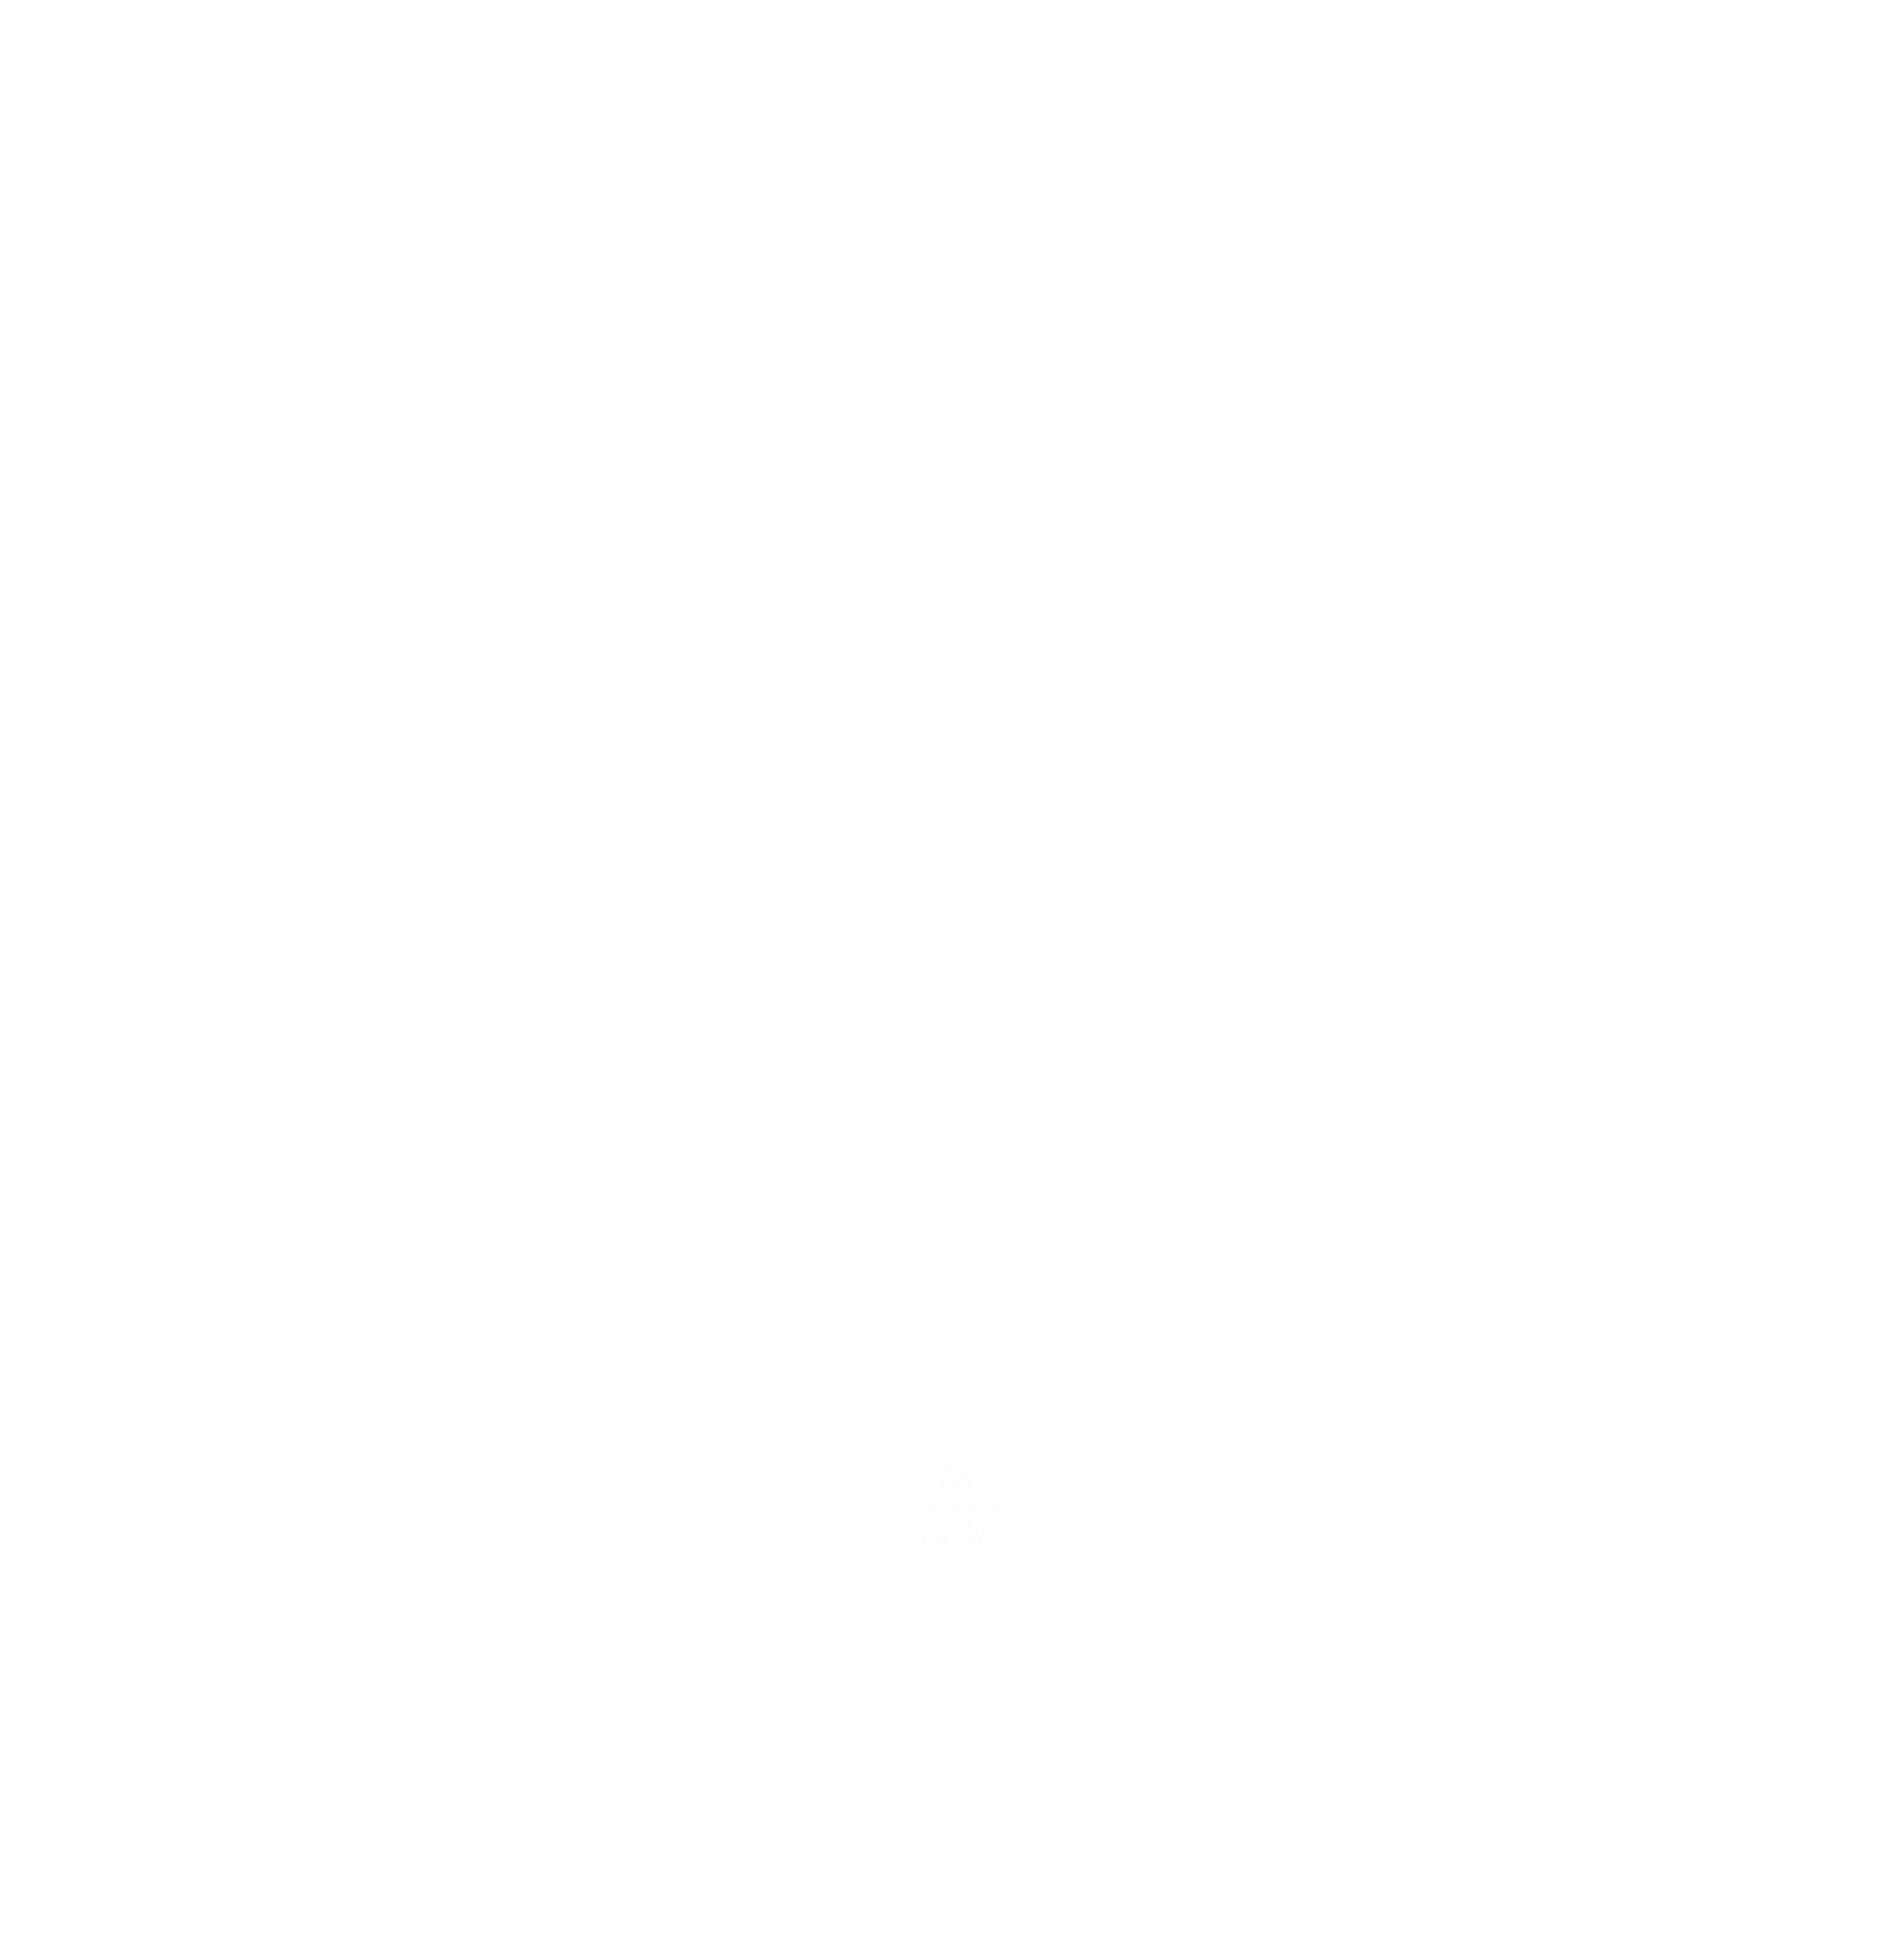 Merry clip art image. Christmas stamp png jpg freeuse download